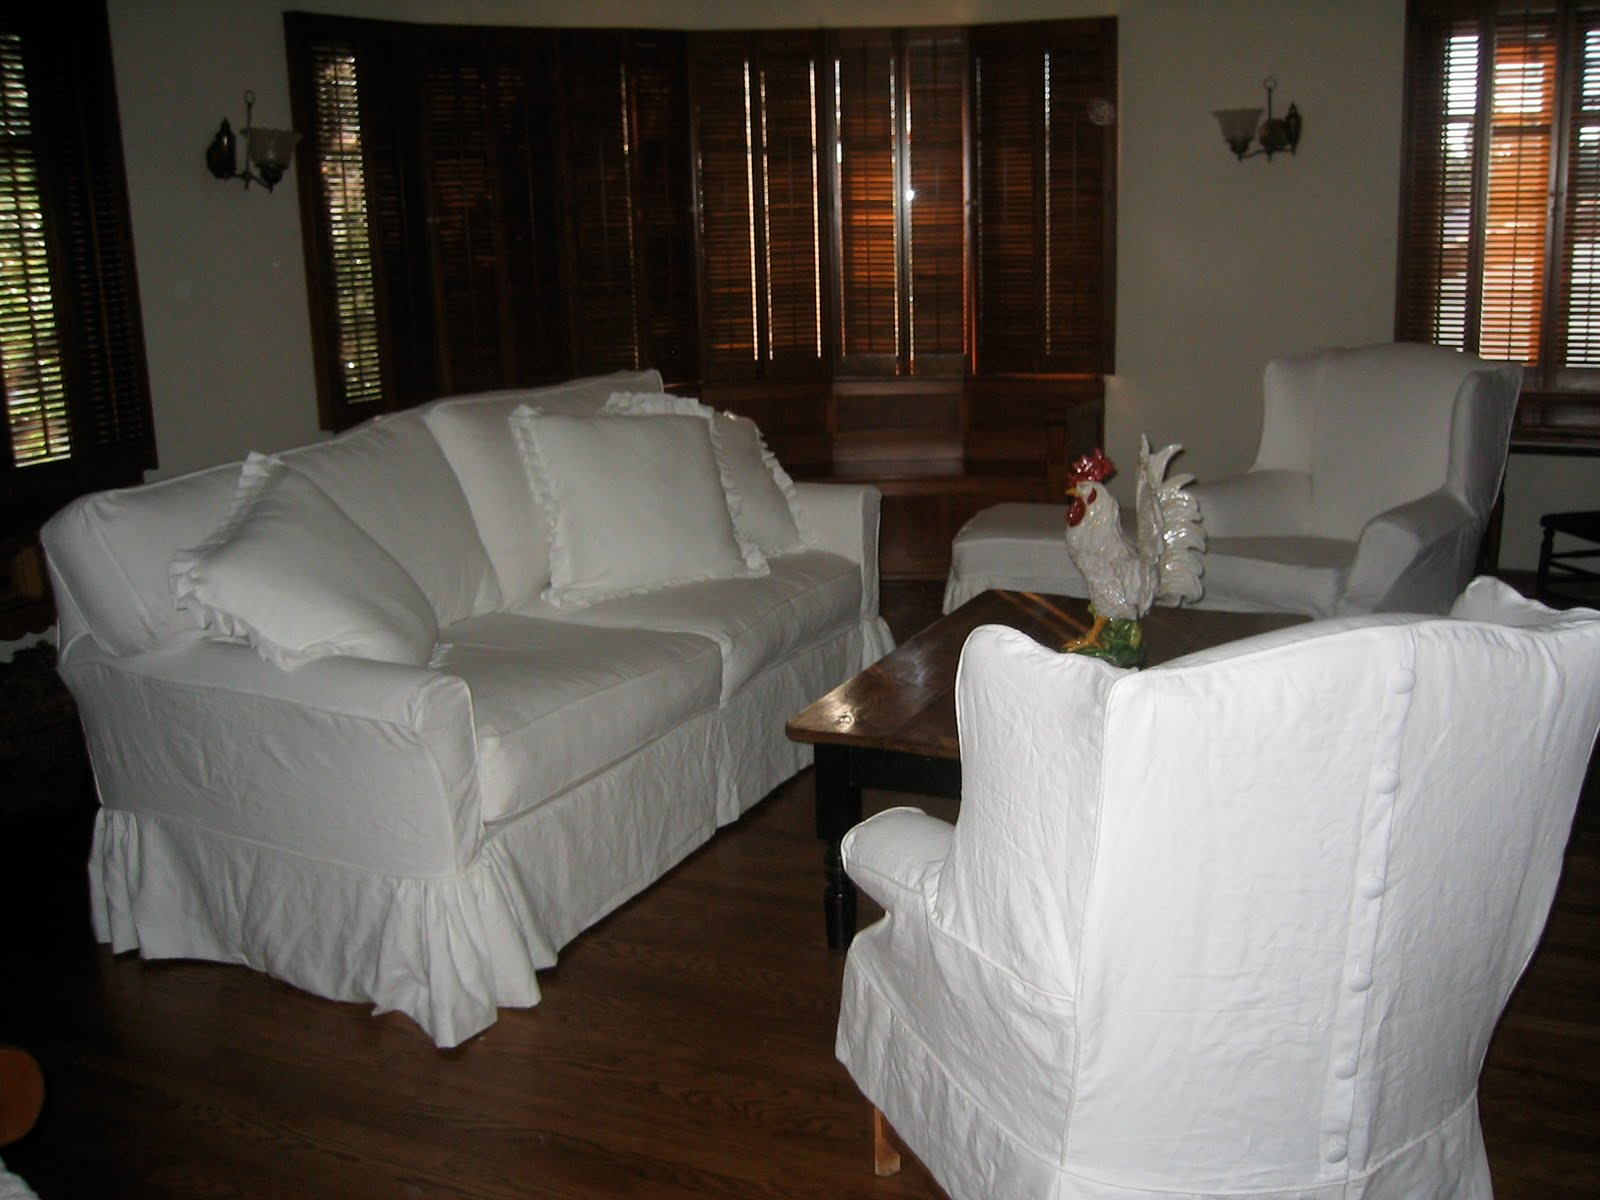 slipcovers ektorp sofa studio ikea my linen a get lovely hello belgian cover sofas fixer slipcover for hack upper from bemz at luxurious